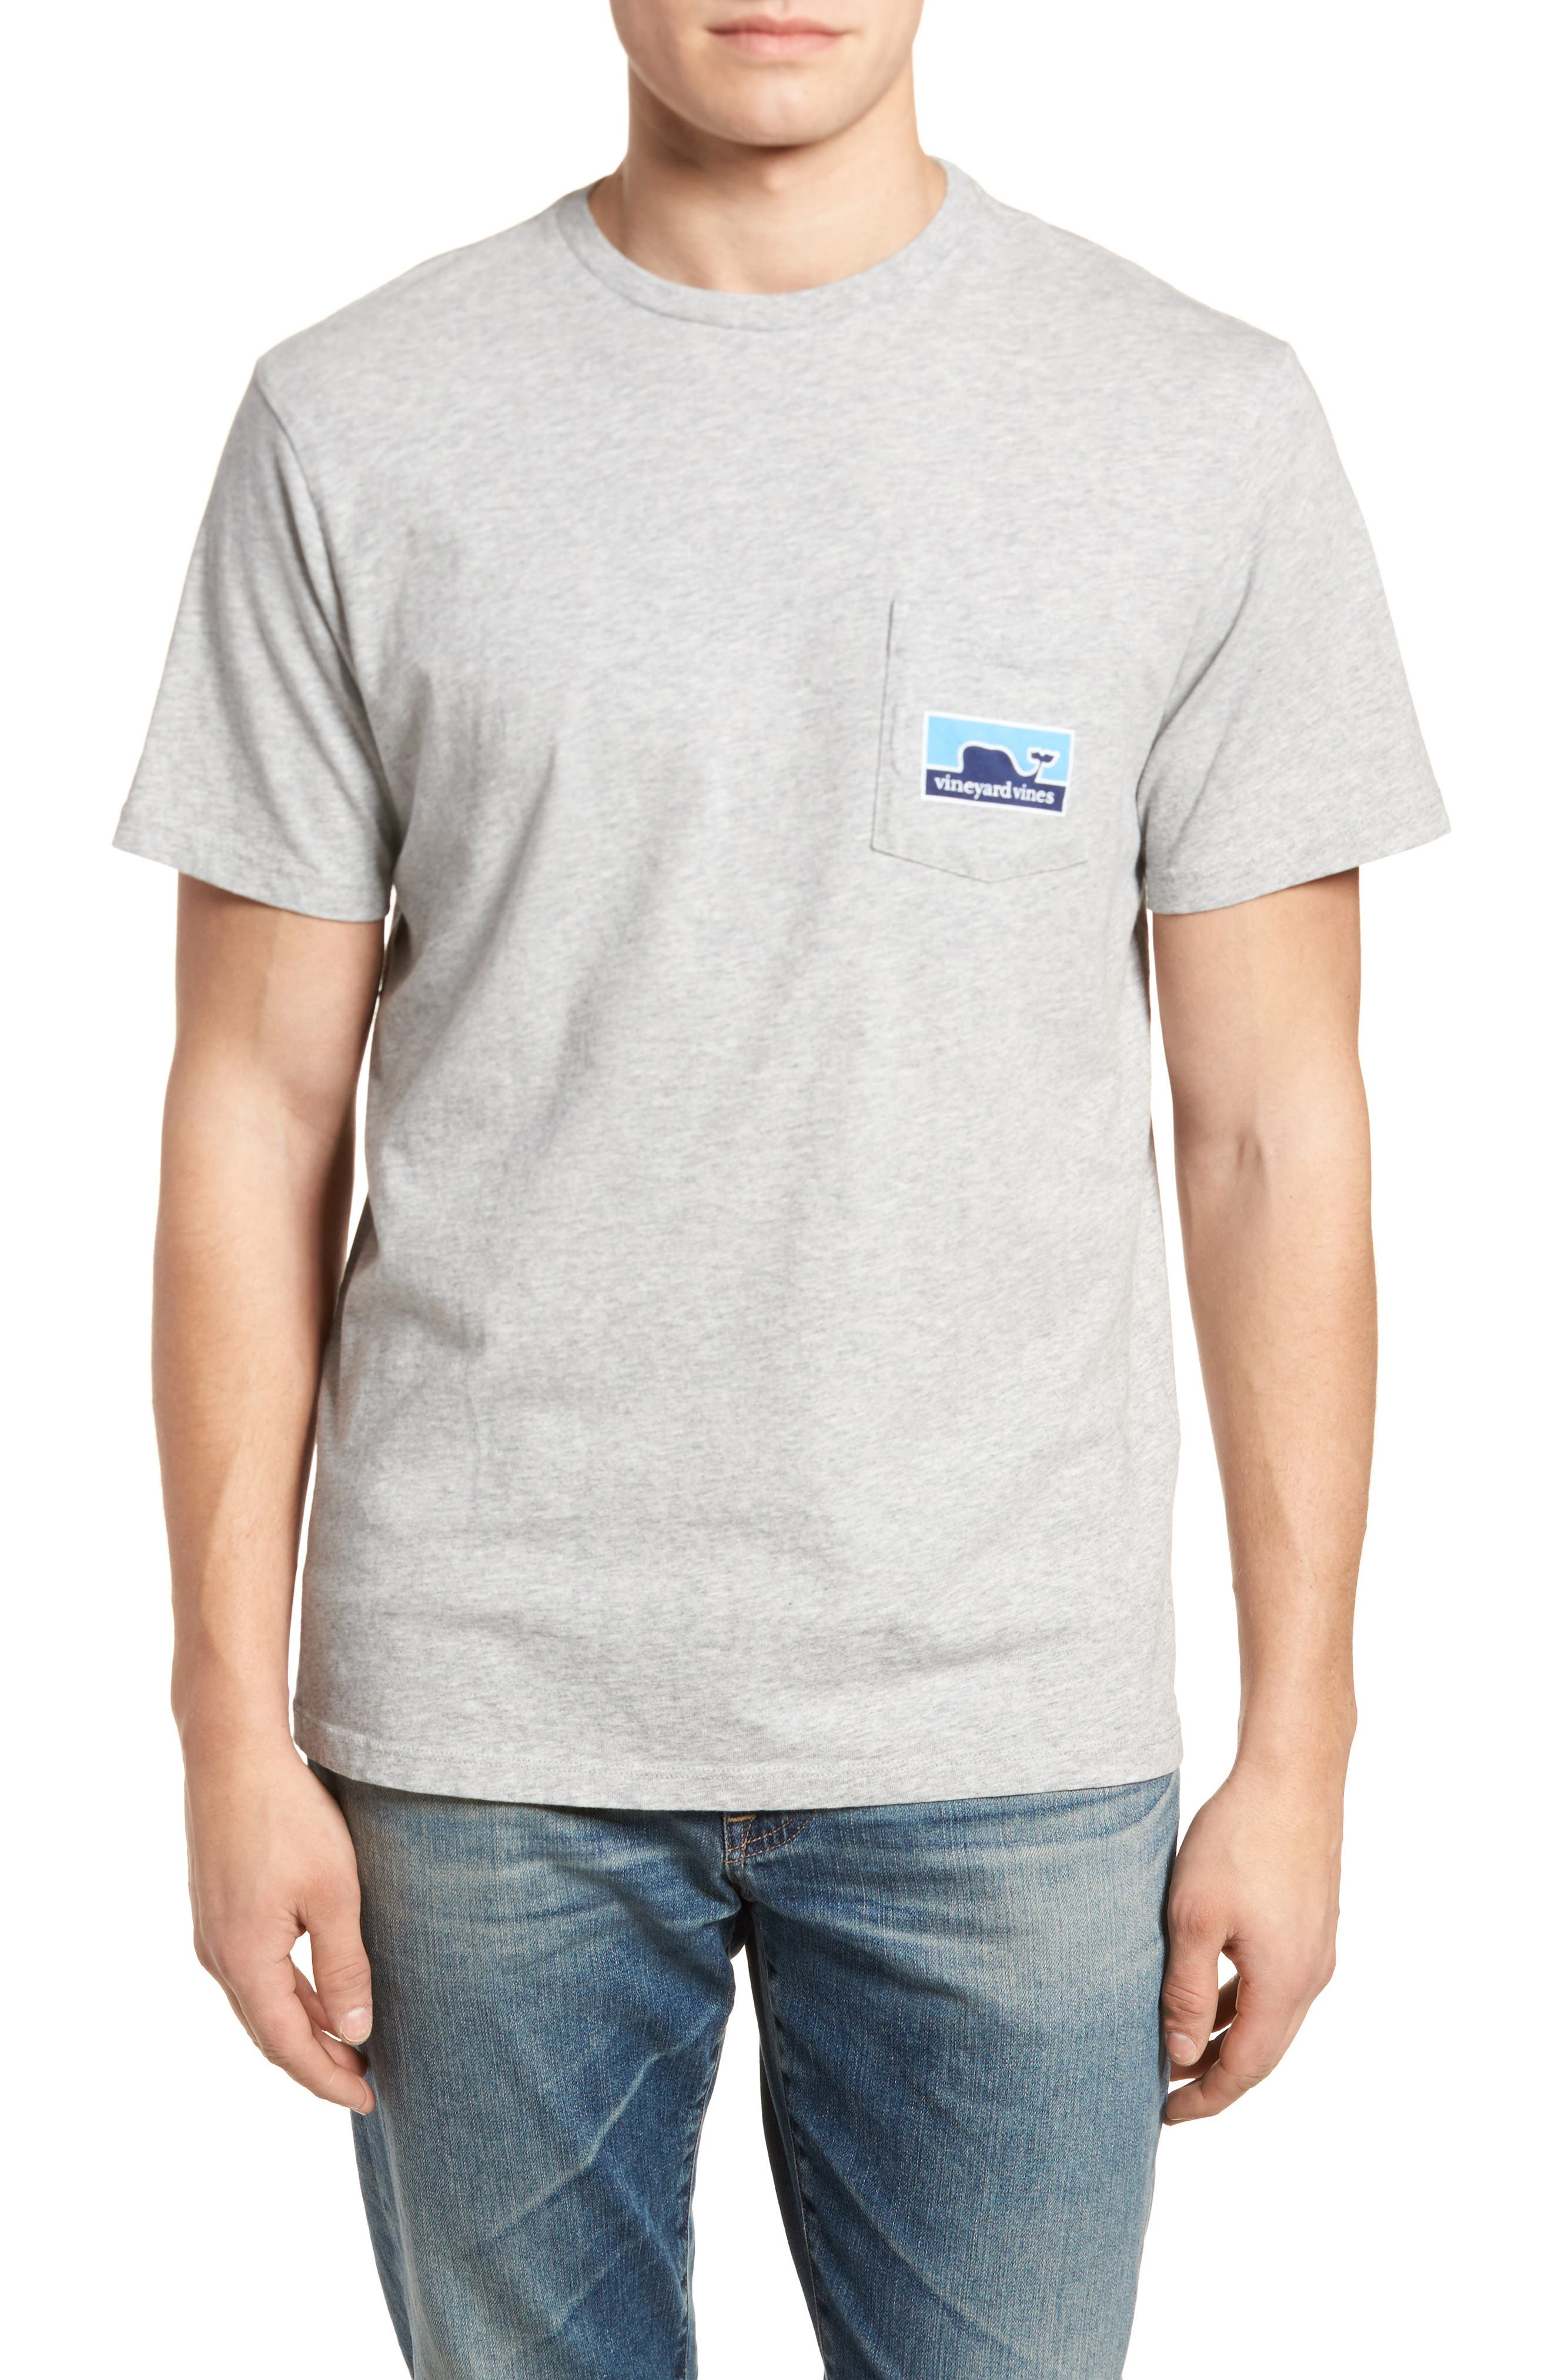 VINEYARD VINES,                             Whaleline Graphic Pocket T-Shirt,                             Main thumbnail 1, color,                             039